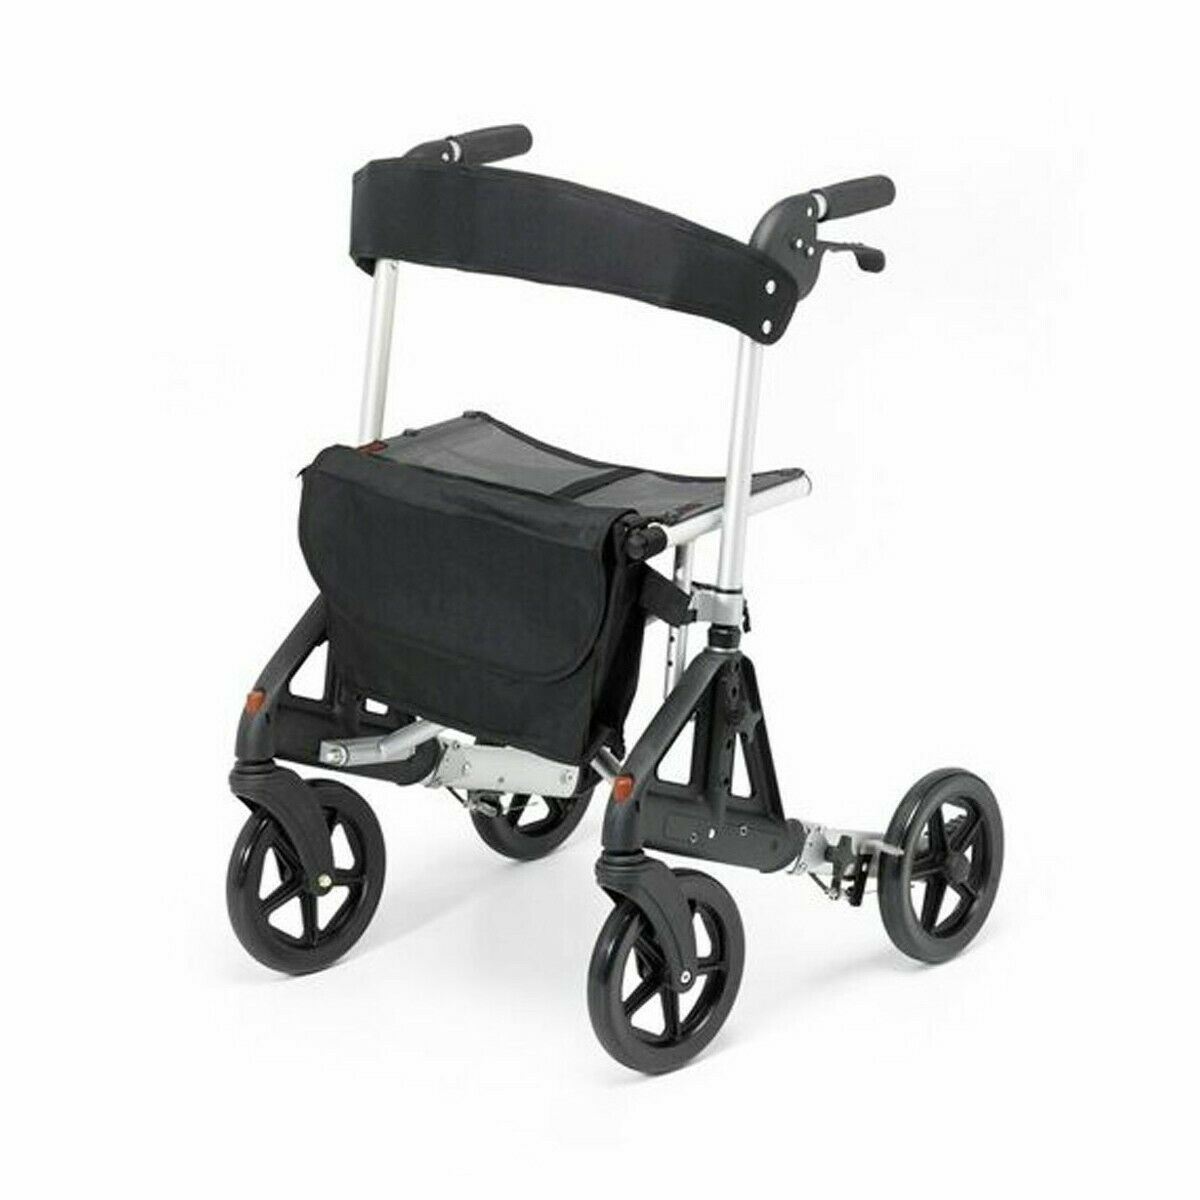 s l1600 - Days Fortis Rollator with Adjustable Seat Height Silver - 091558345